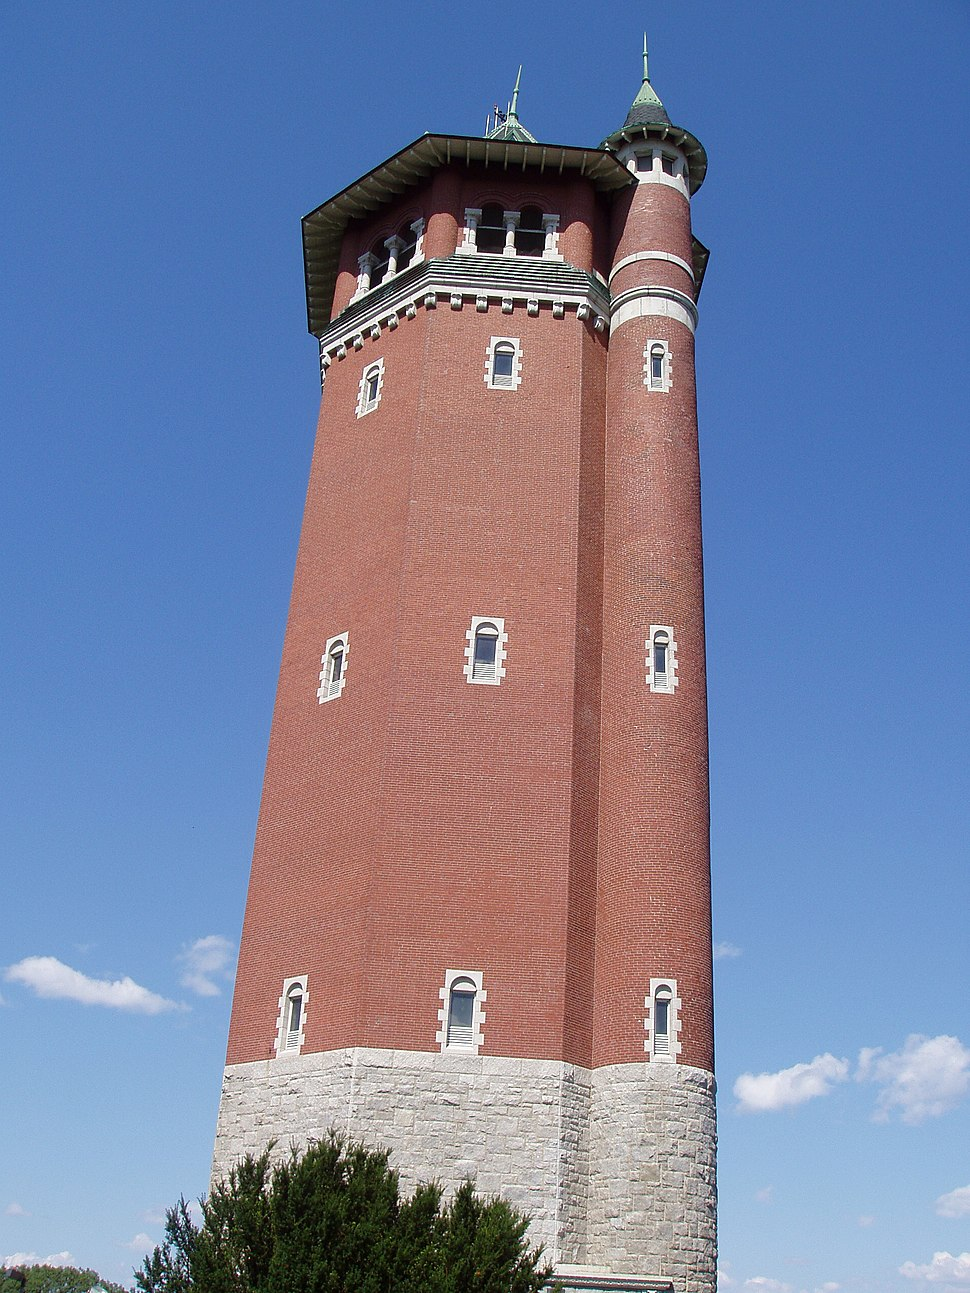 High Service Water Tower (1895), Lawrence, Massachusetts